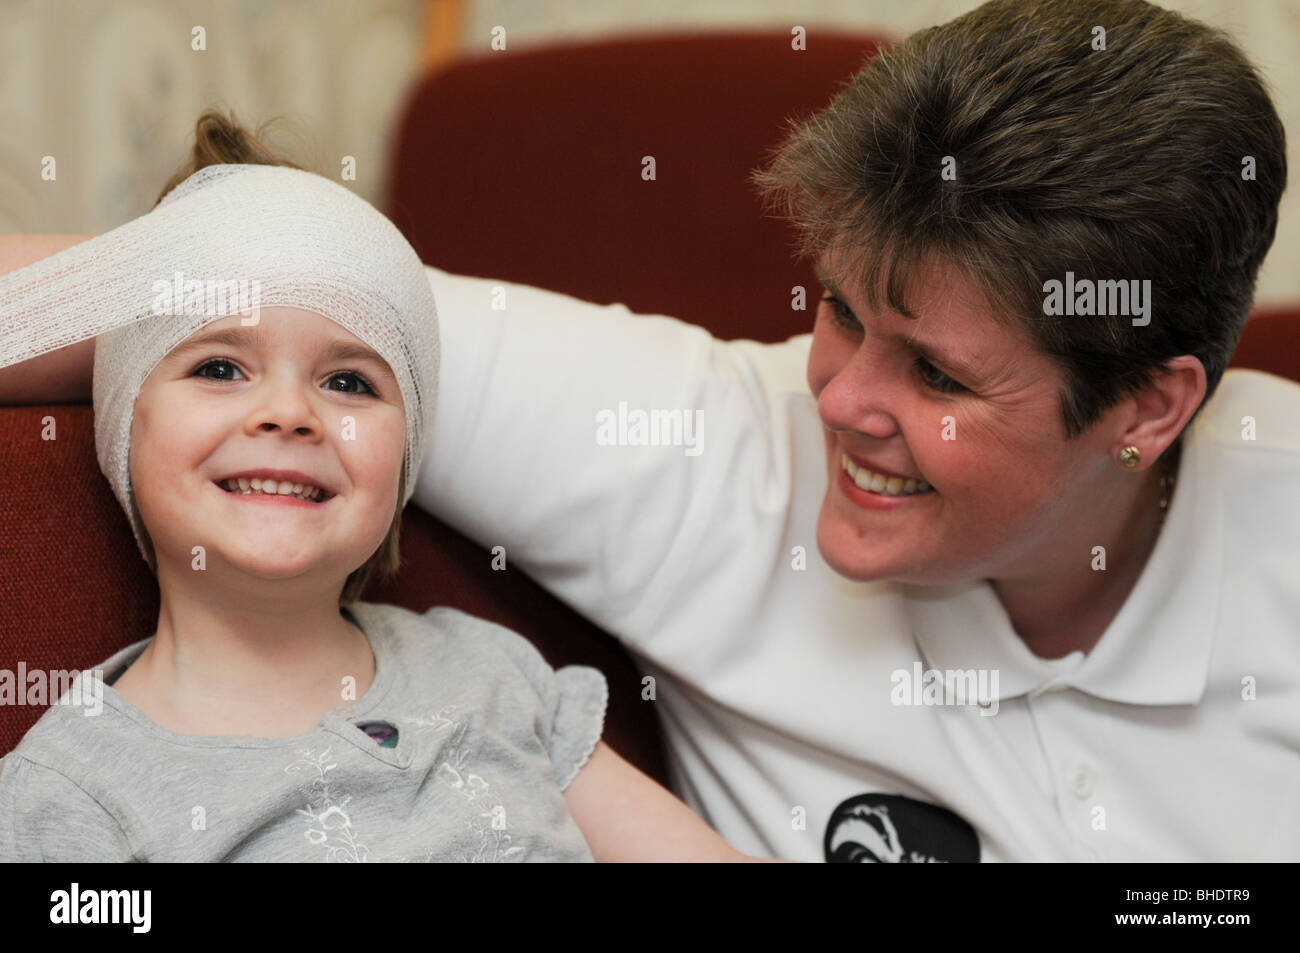 First aid practice being carried out on a little girl who is smiling at her first aider as she wraps a bandage around - Stock Image